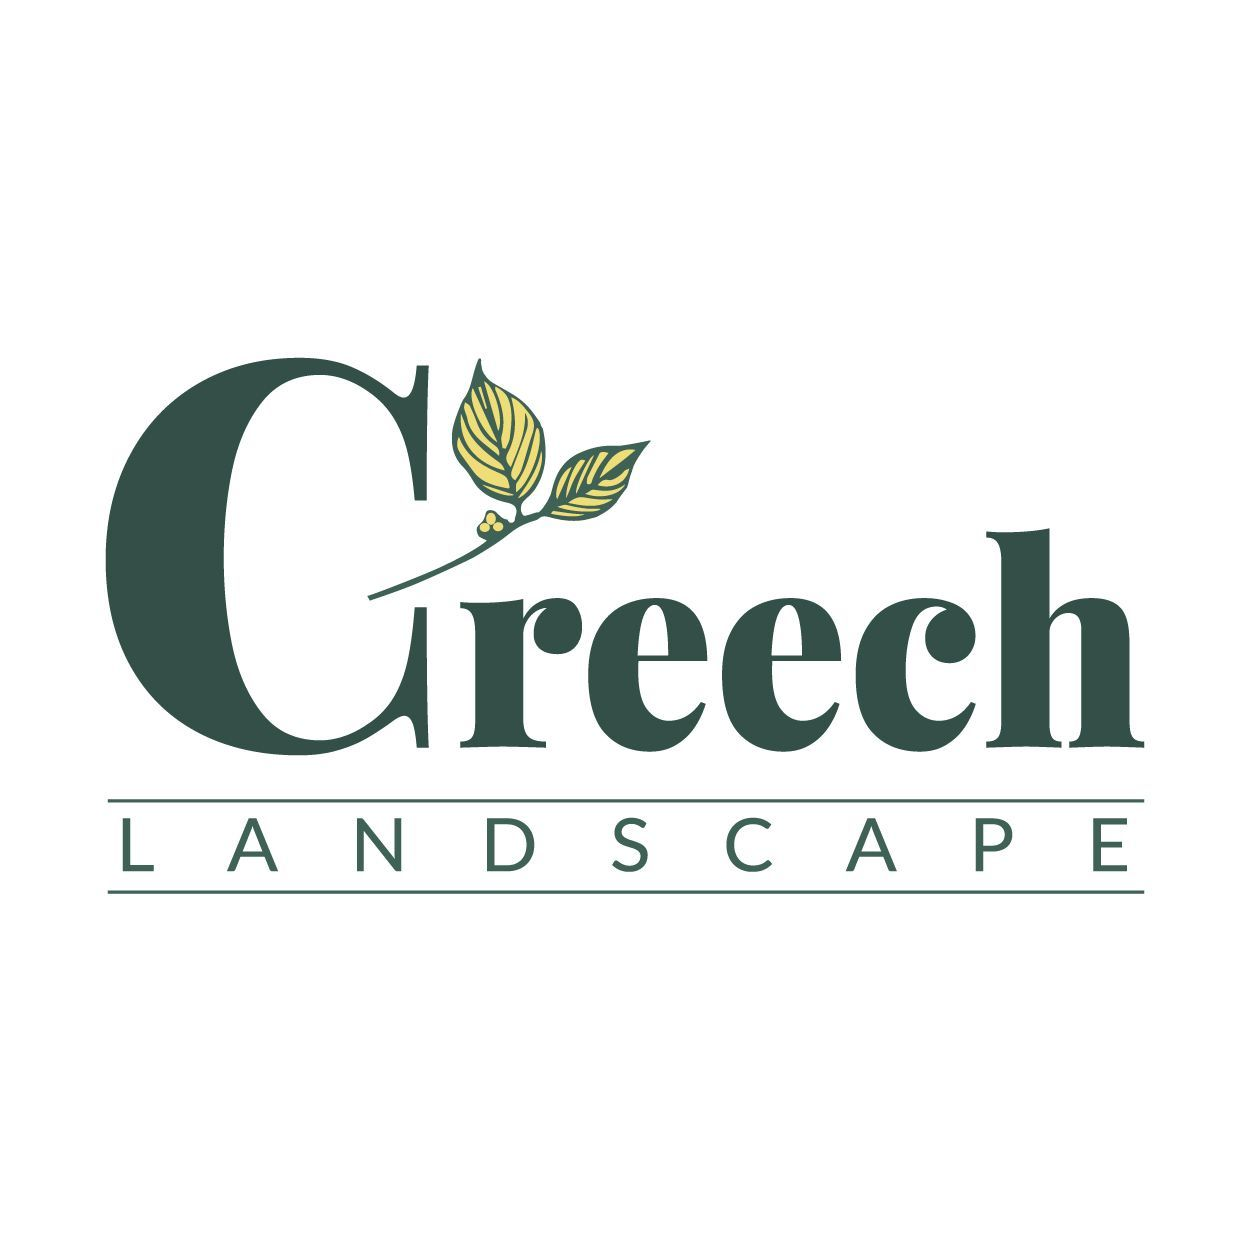 Creech Landscape